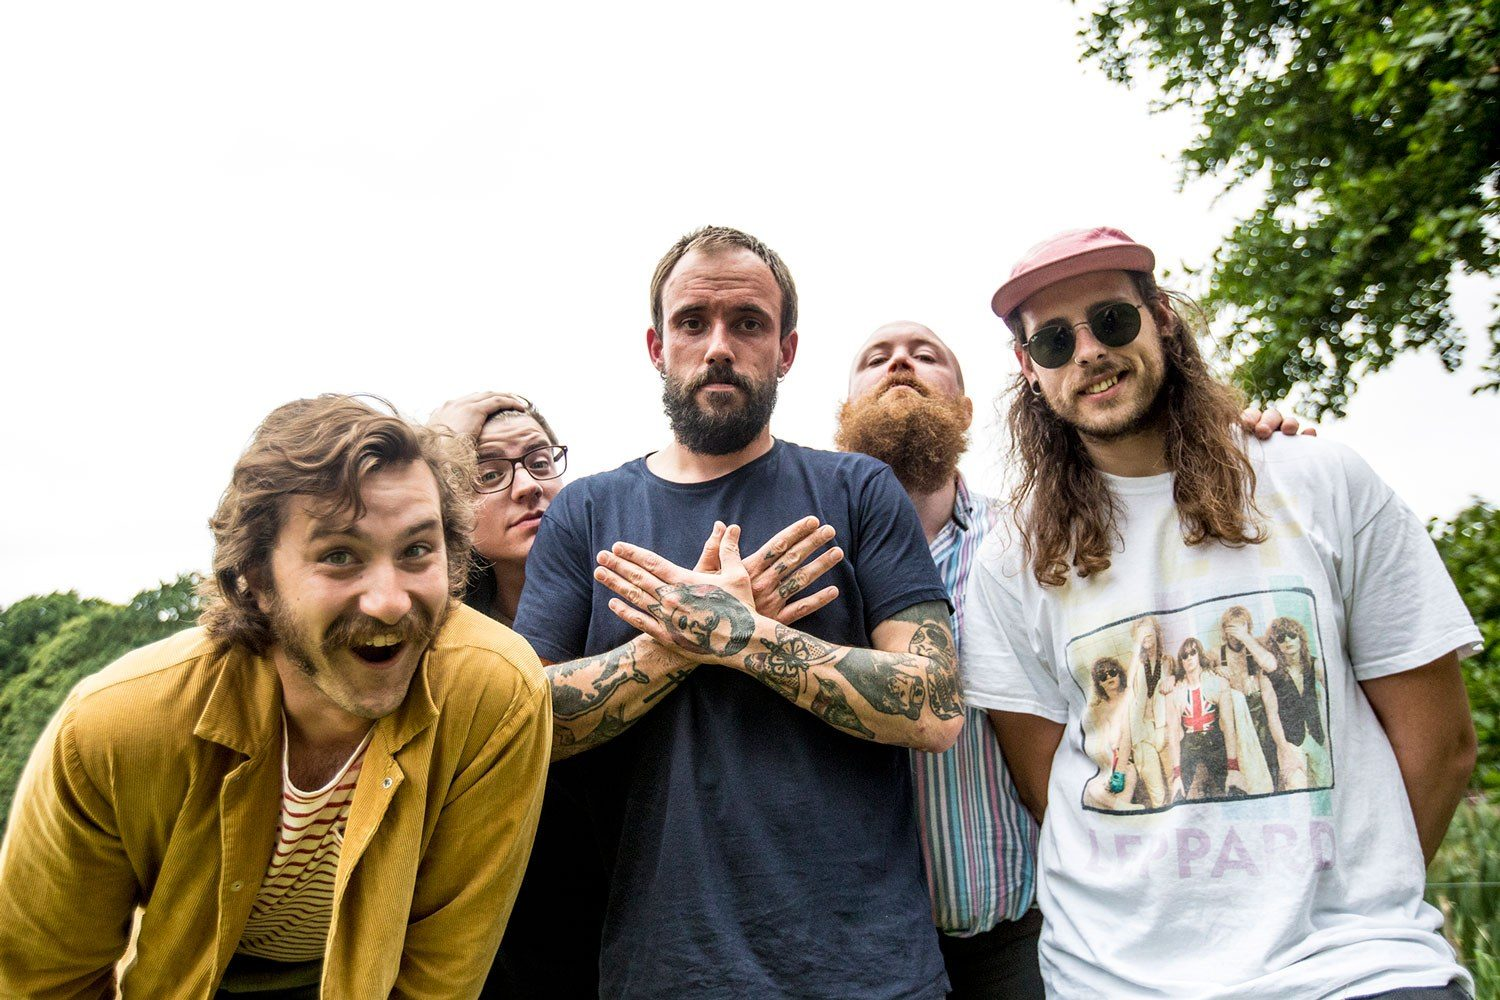 Punk band Idles to launch first major showcase at Warrington's new Live Bar